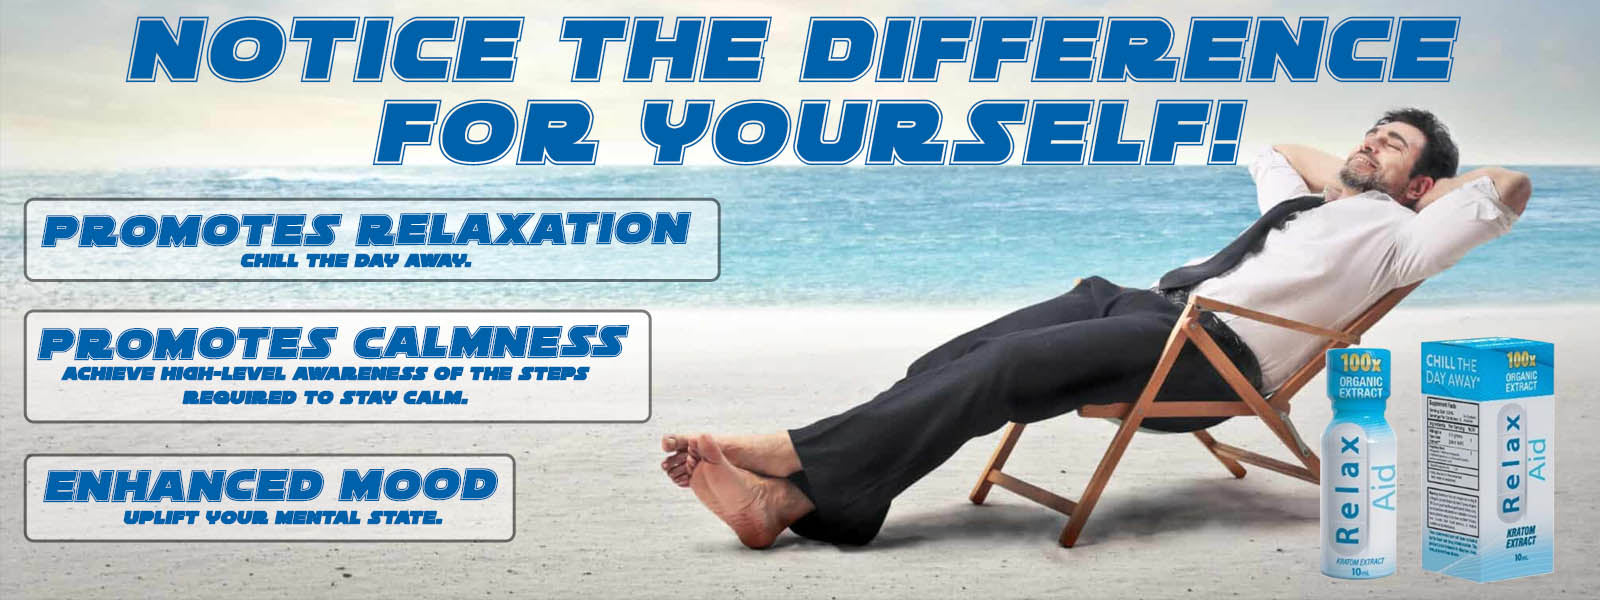 The Benefits of Relax Aid